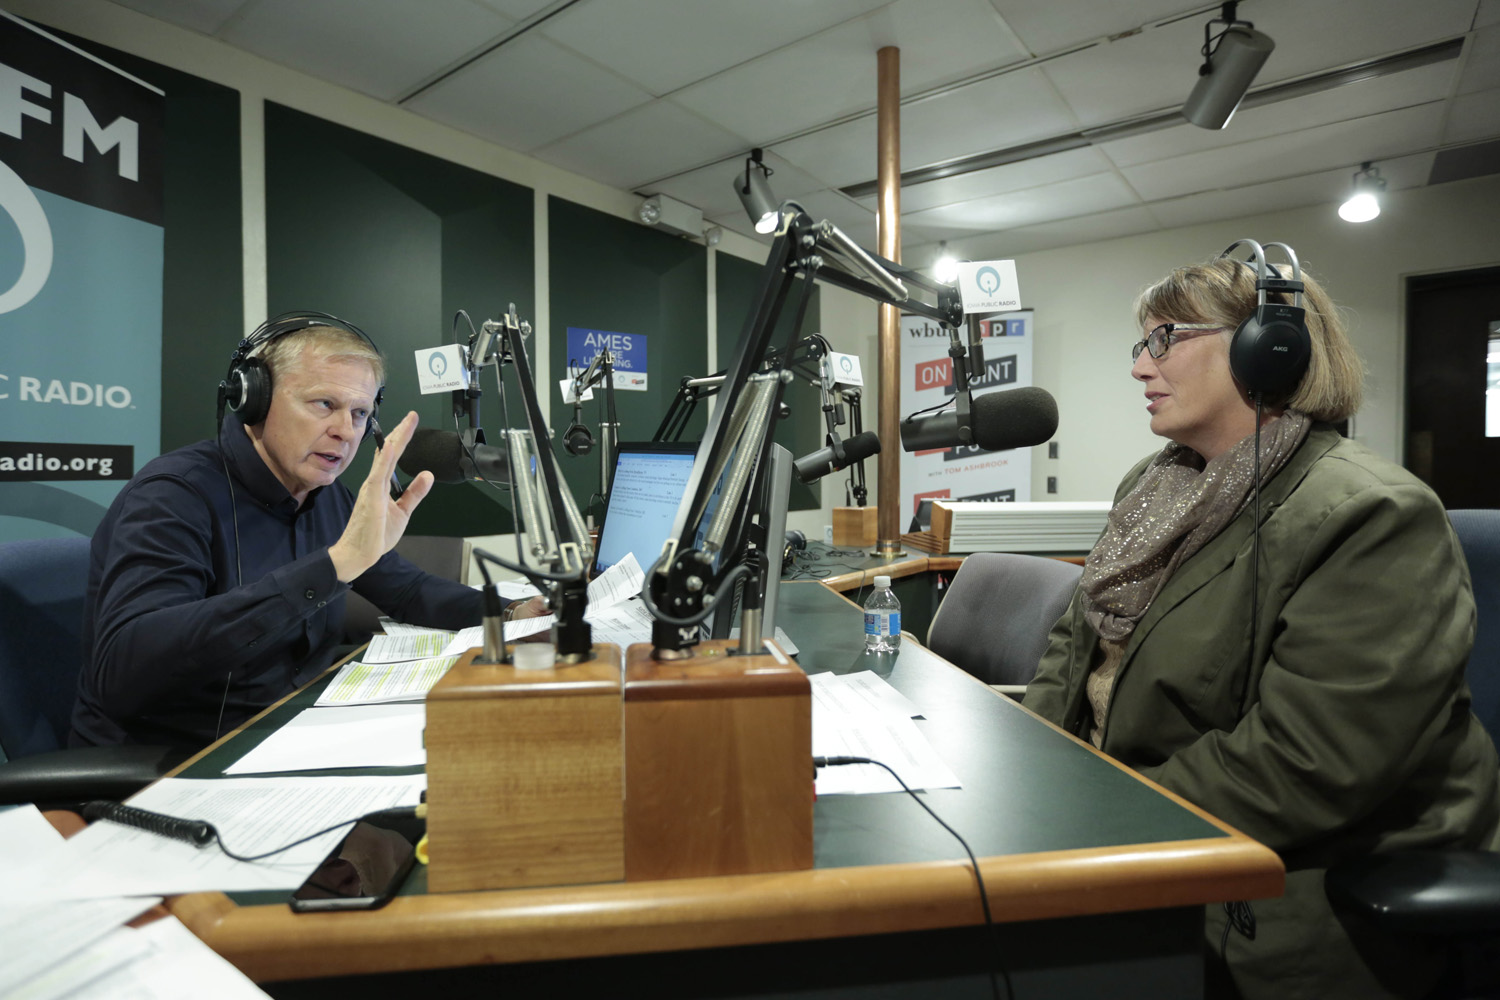 Tom Ashbrook broadcasts Friday morning, November 10, 2017, from Ames, Iowa on Iowa Public Radio. He is joined by Des Moines Register political columnist Kathy Obradovich. (Christopher Gannon/Iowa State University)